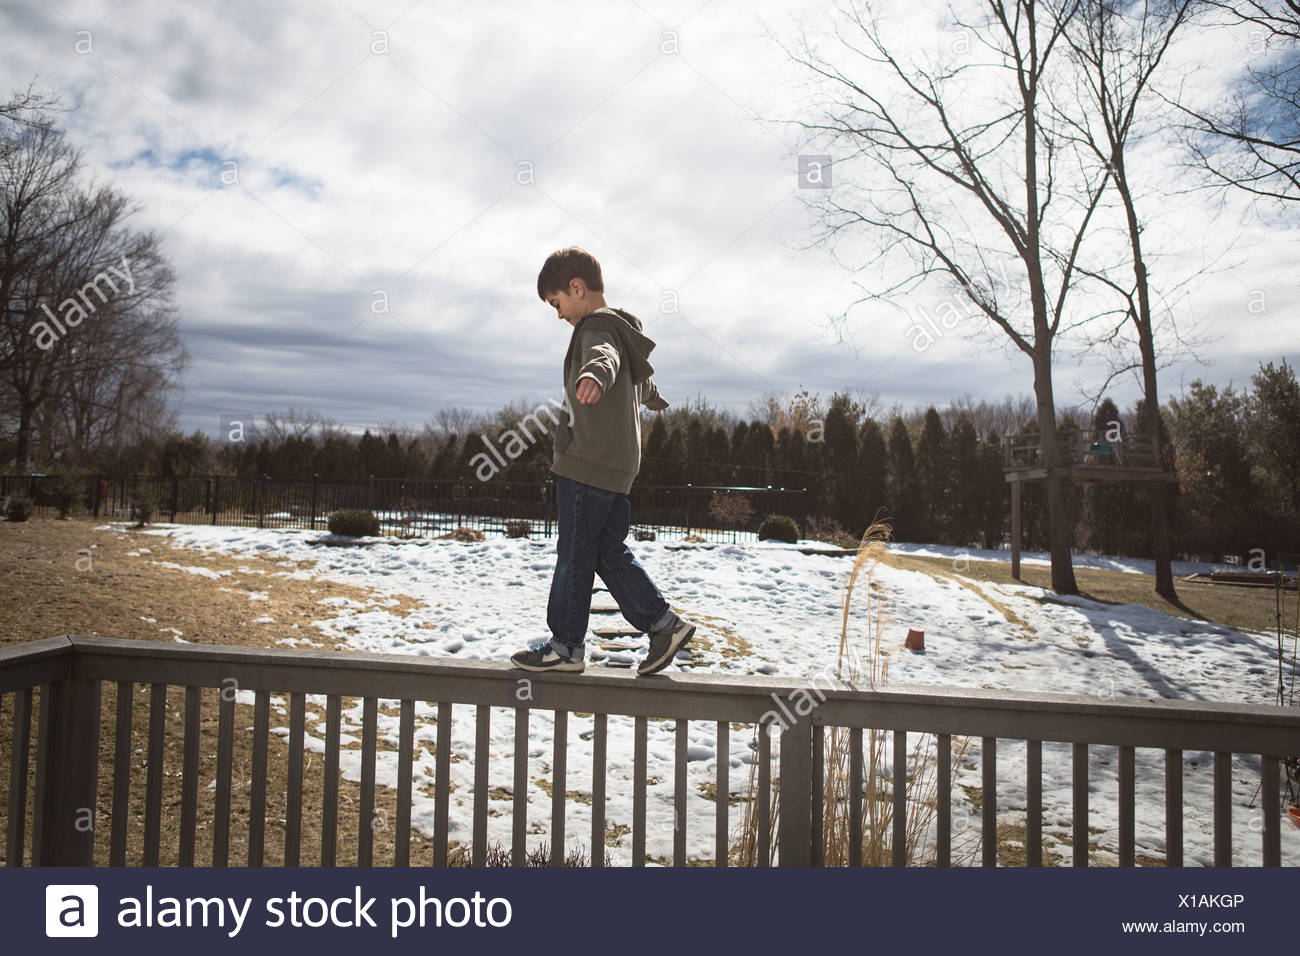 Boy walking along top of fence in park Stock Photo